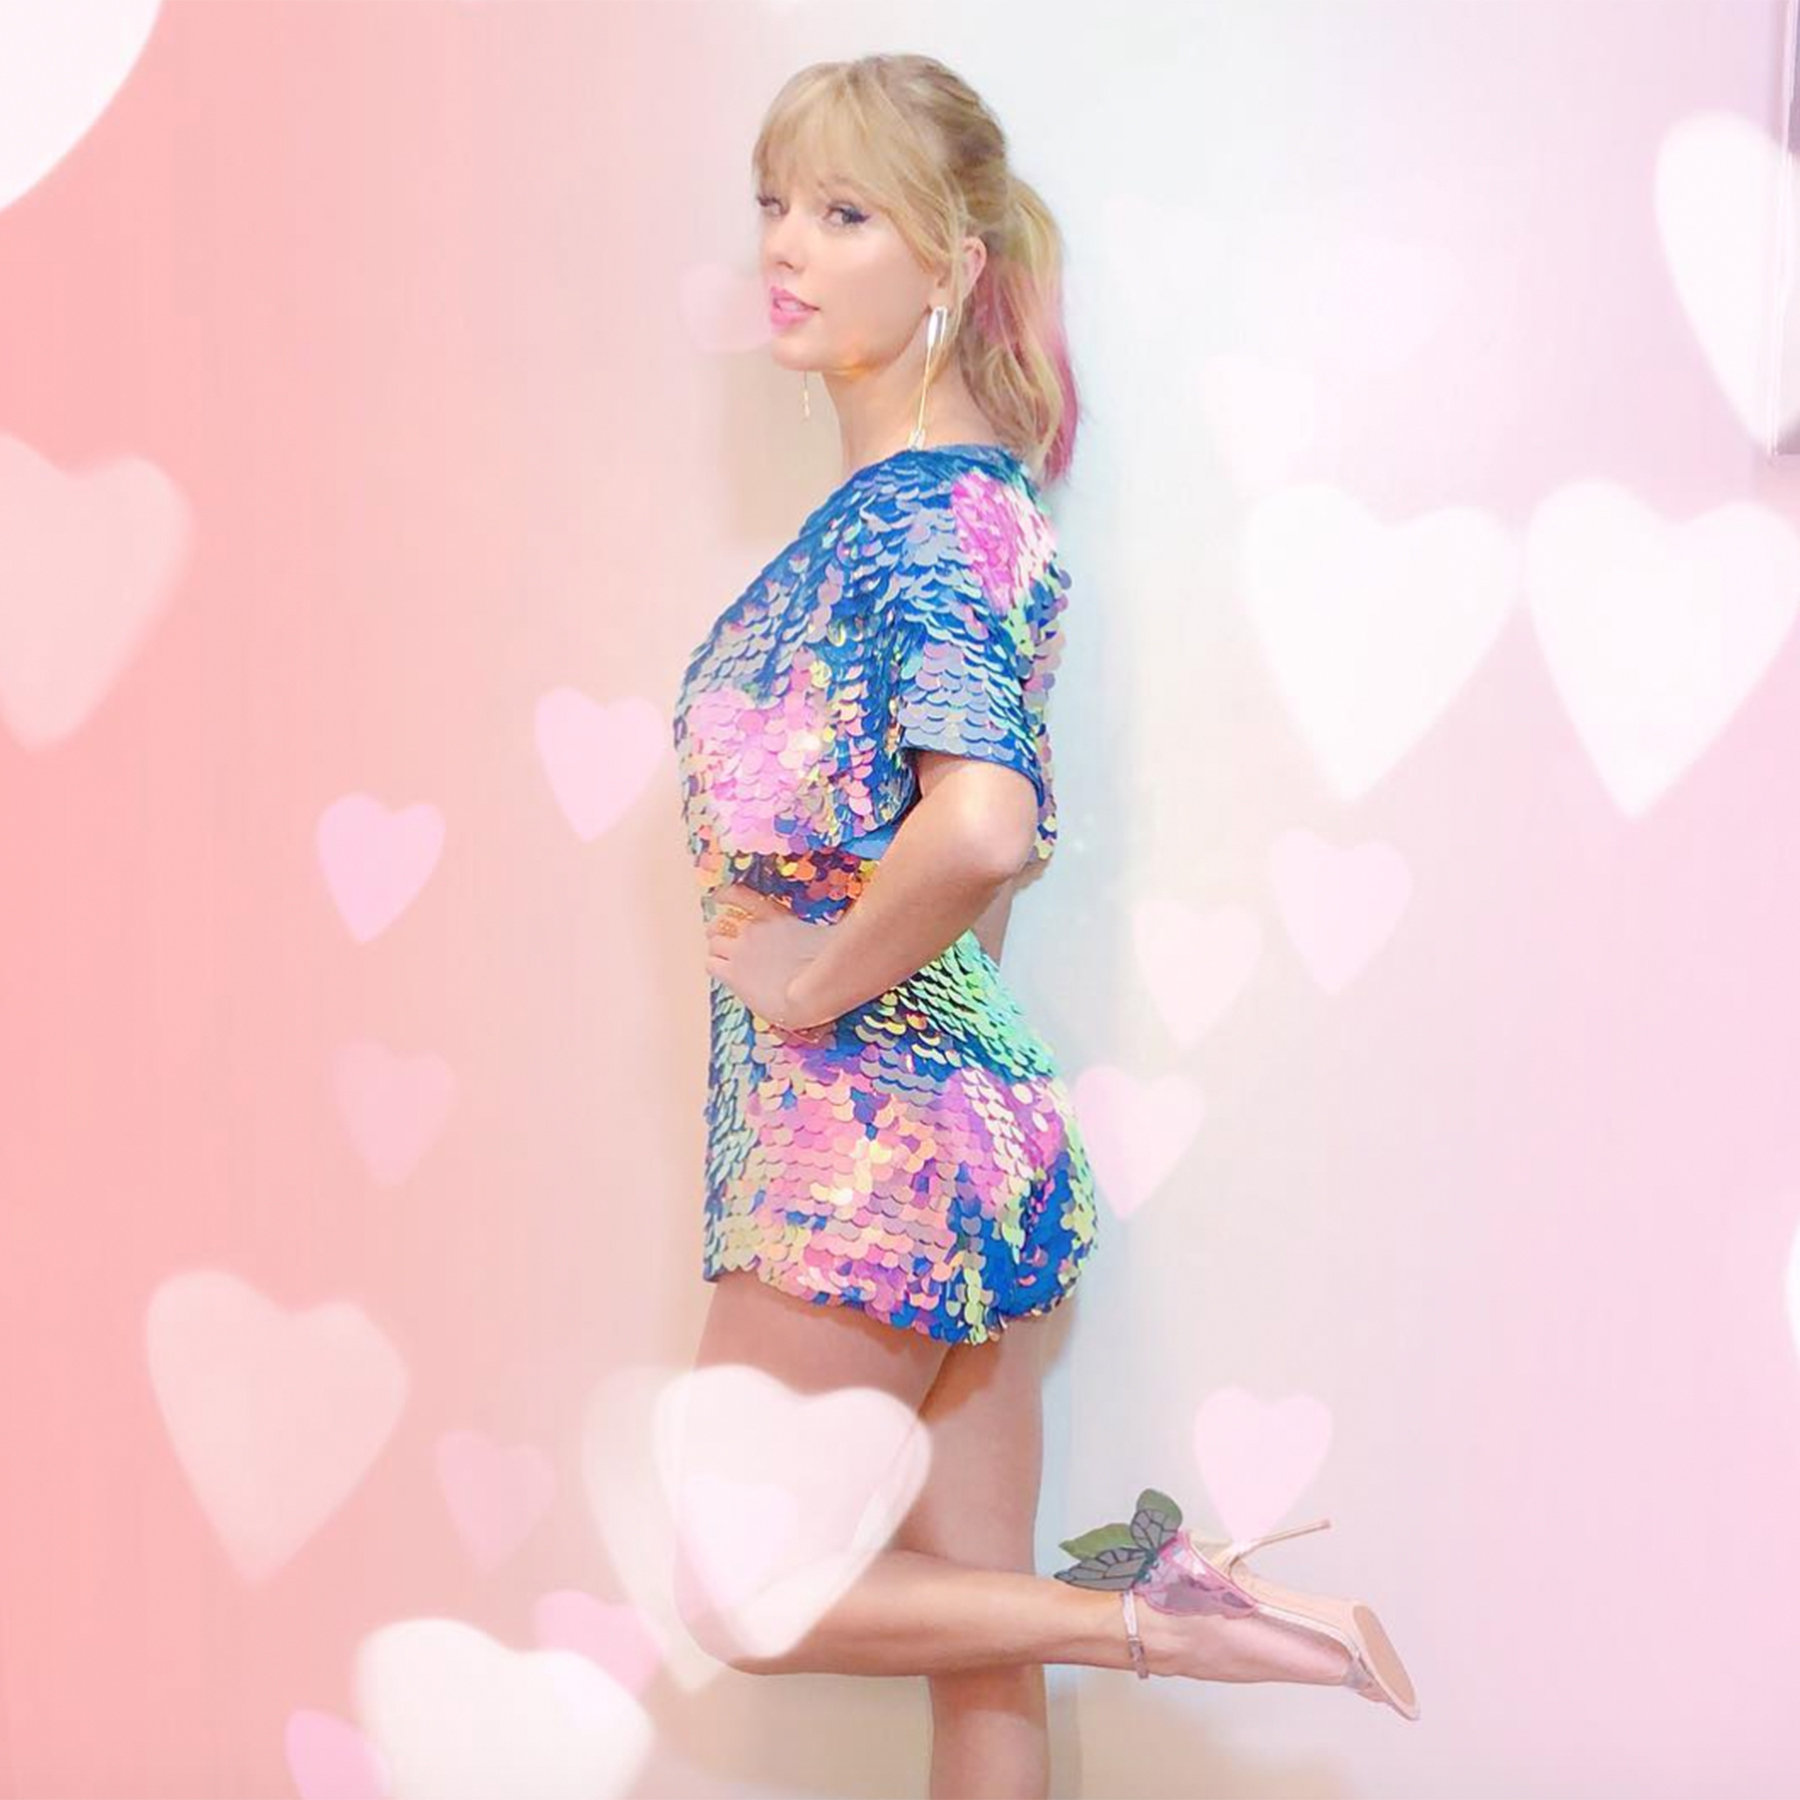 Taylor Swift Continues To Tease New Music All The Signs That Songs Are Coming People Com